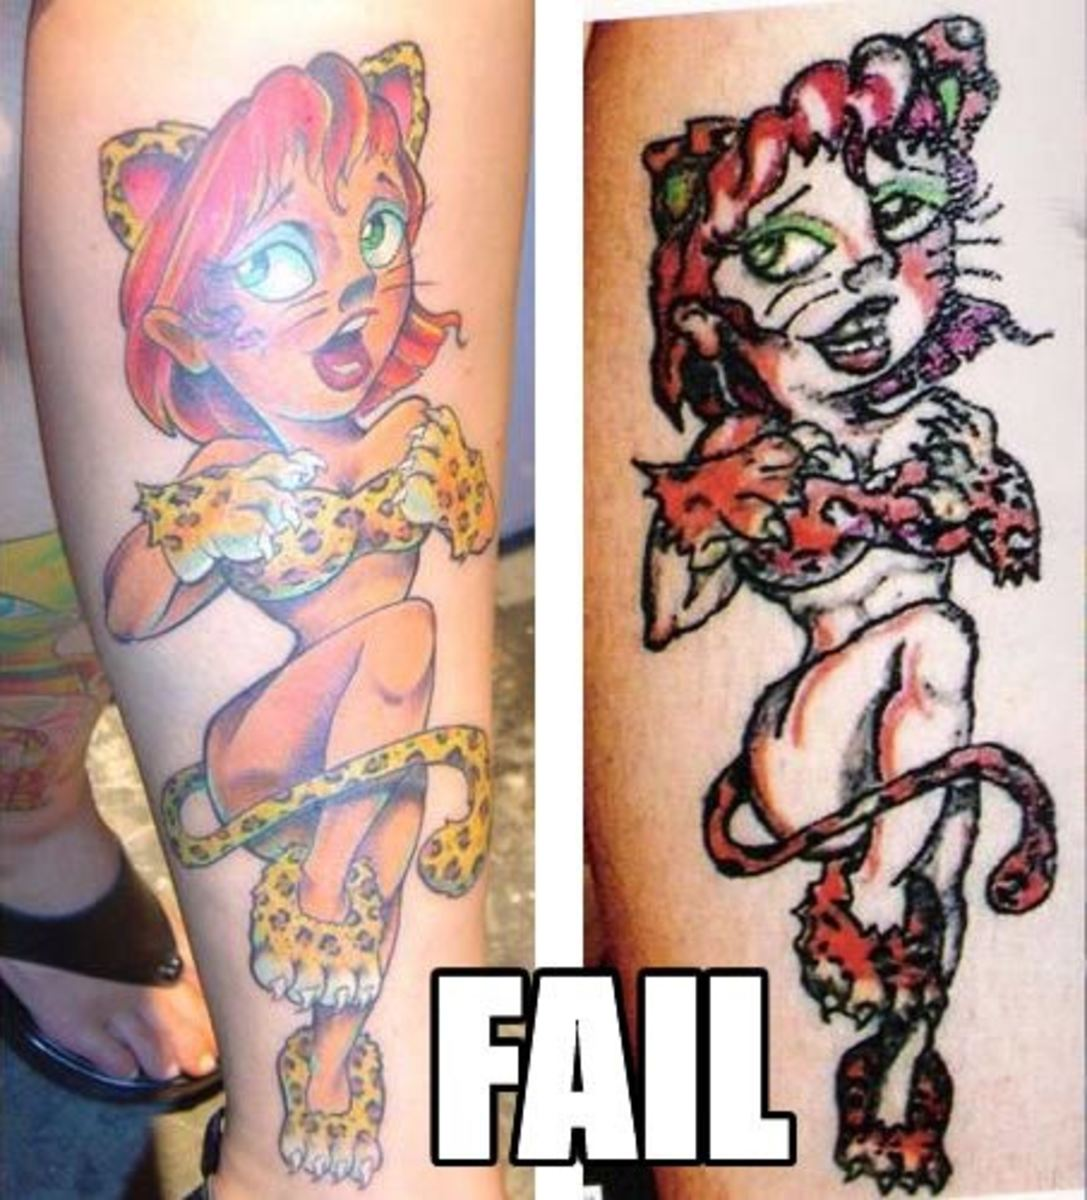 Can your tattoo artist actually draw??? Maybe you should ask before you go under the needle....